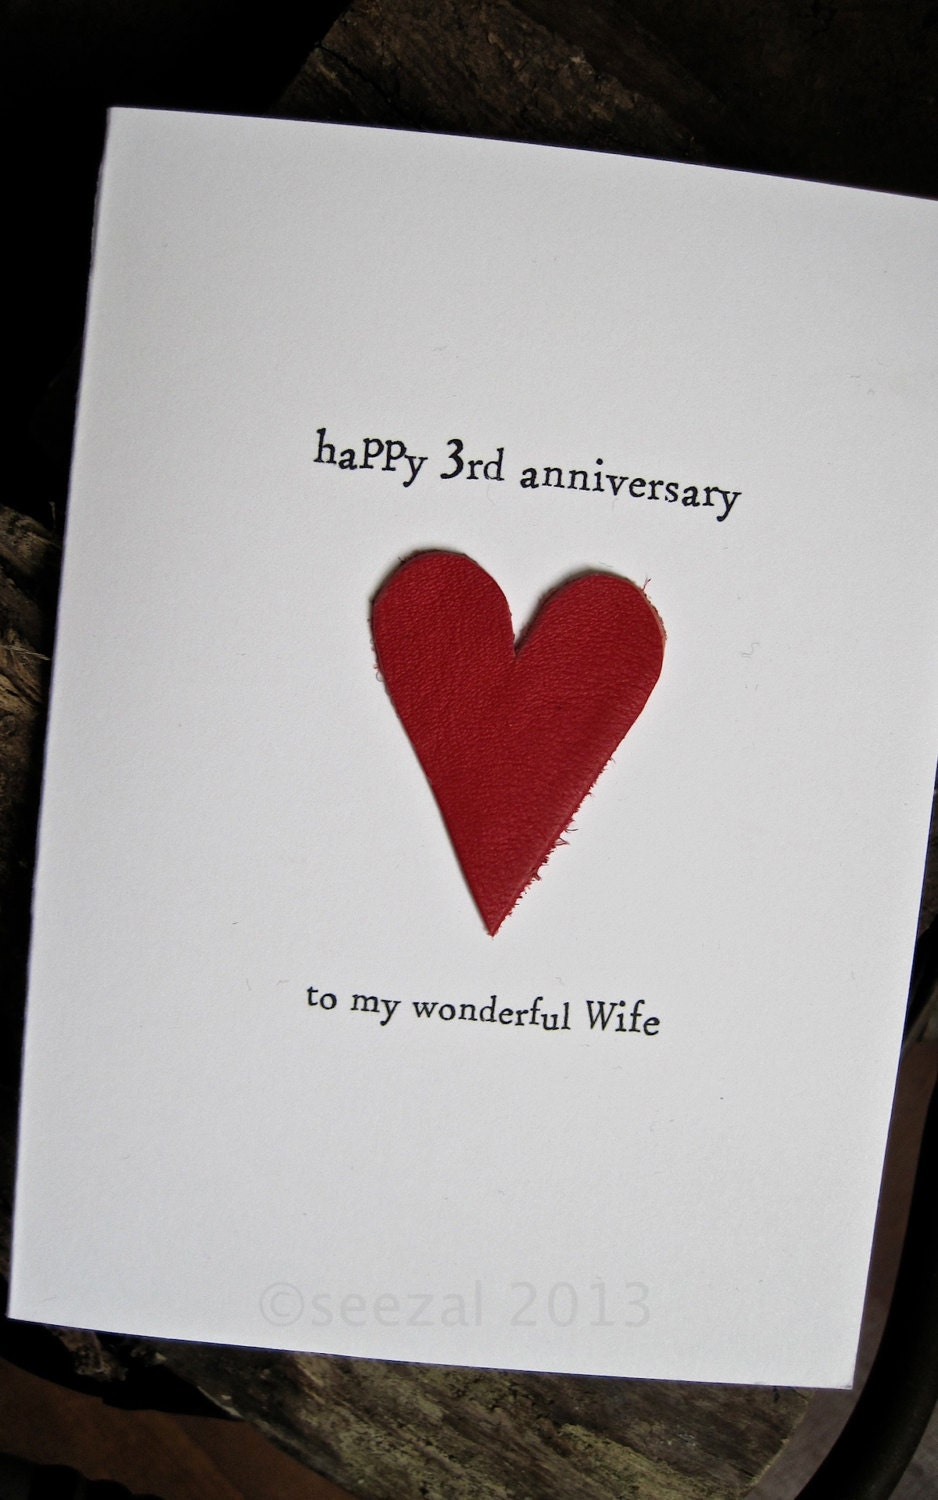 2 Year Wedding Anniversary Ideas For Wife : 3rd Wedding Anniversary Card LEATHER Traditional Gift Handmade